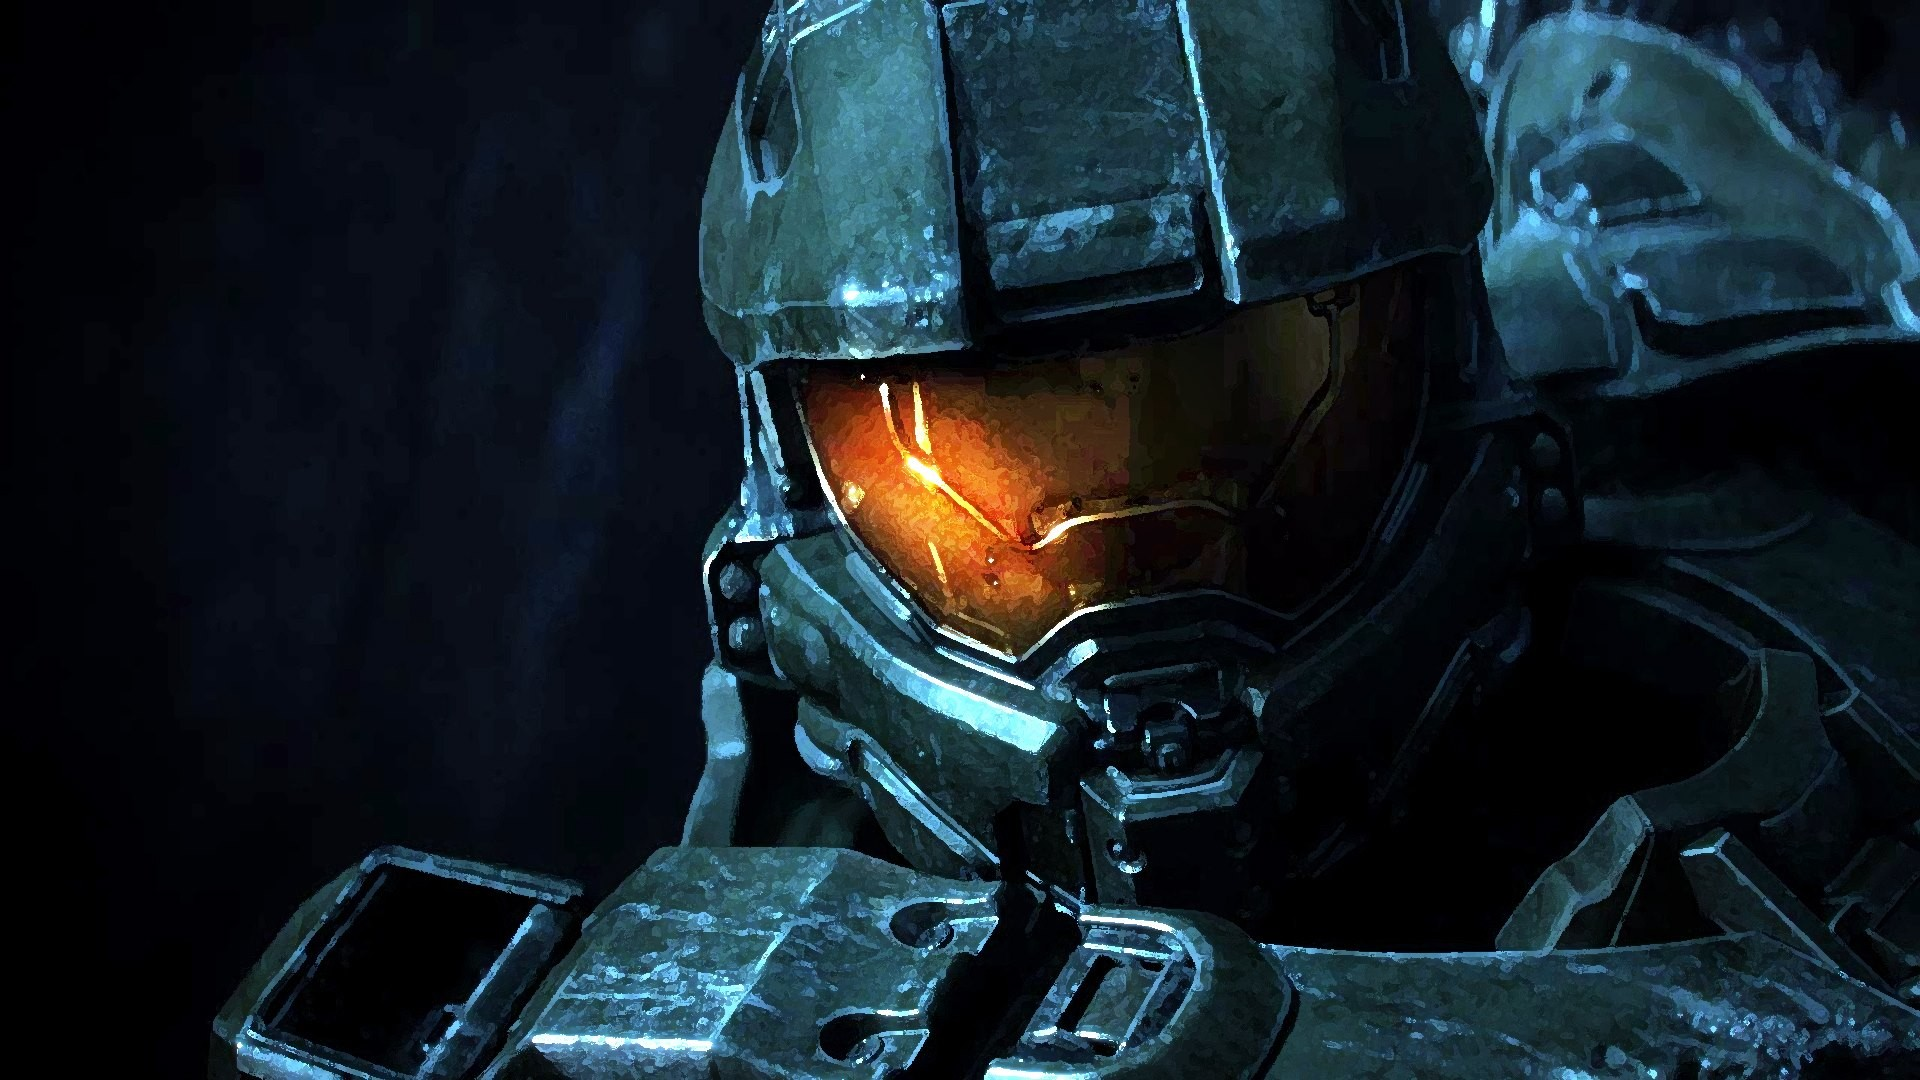 … halo master chief widescreen background wallpapers hd wallpapers …